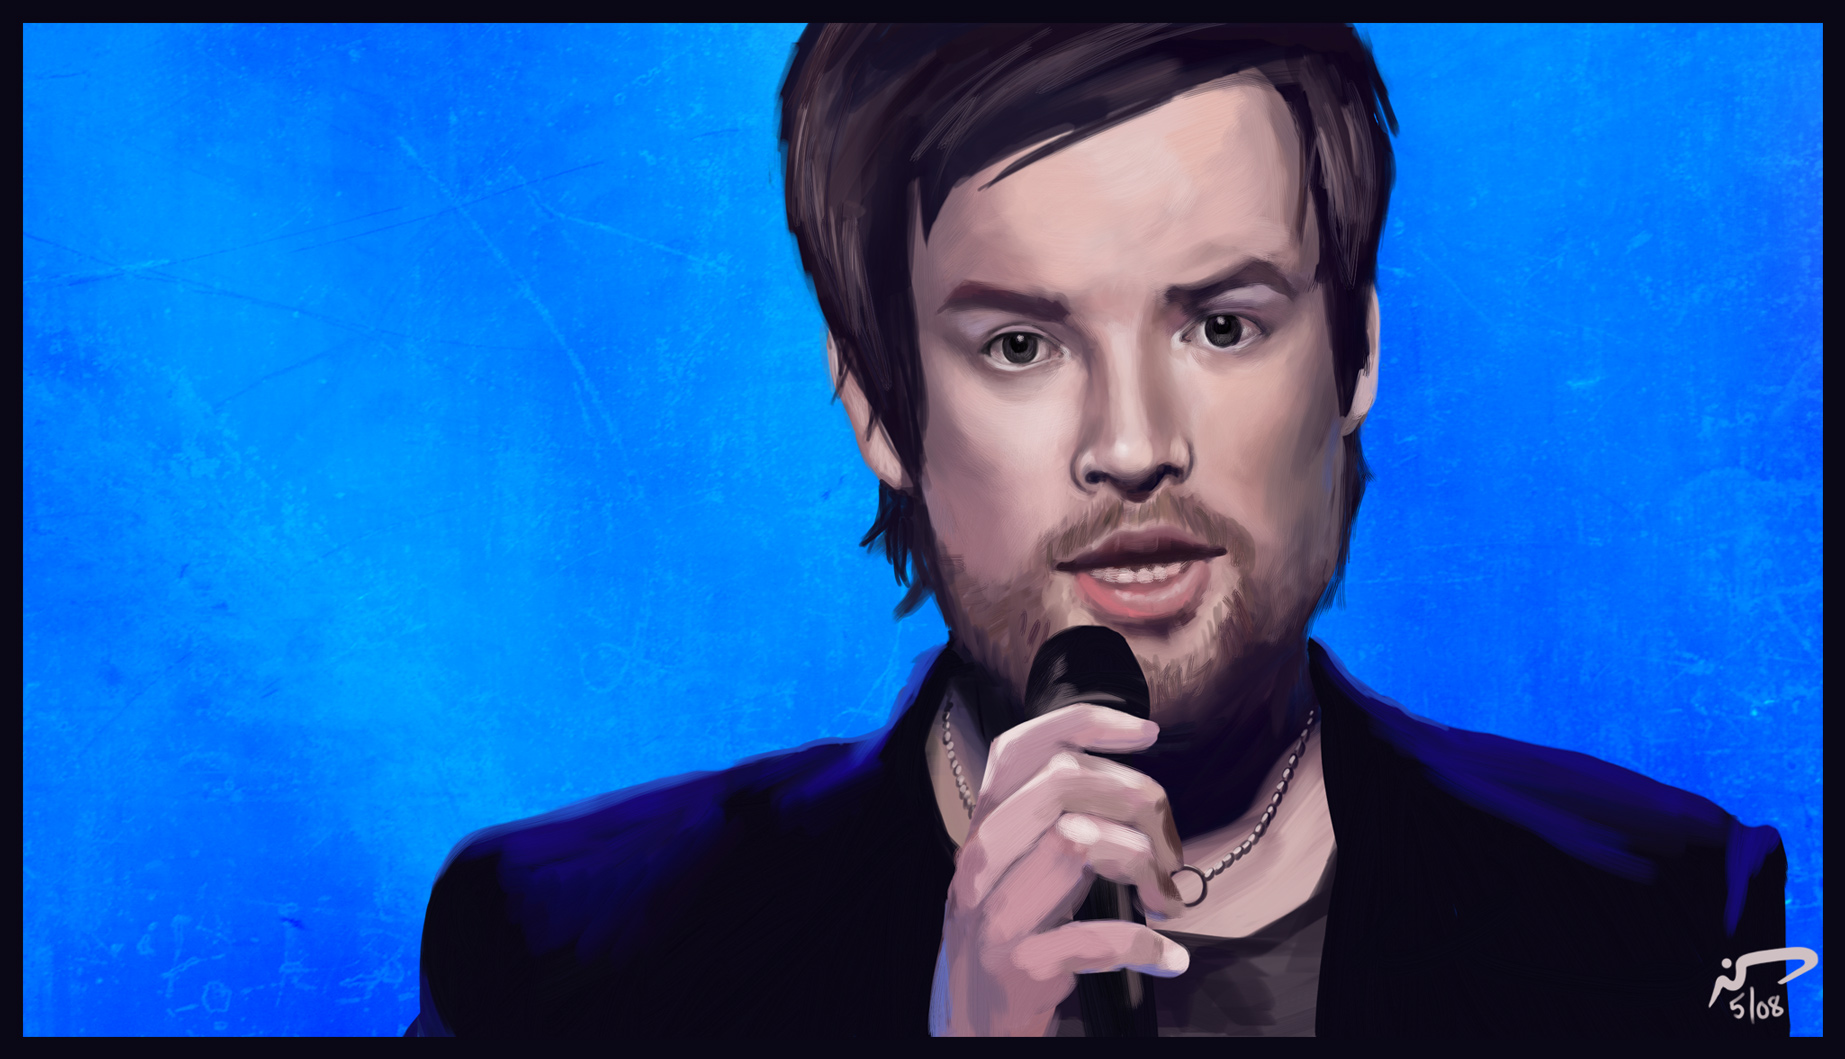 David Cook Painting 9 by Majoh